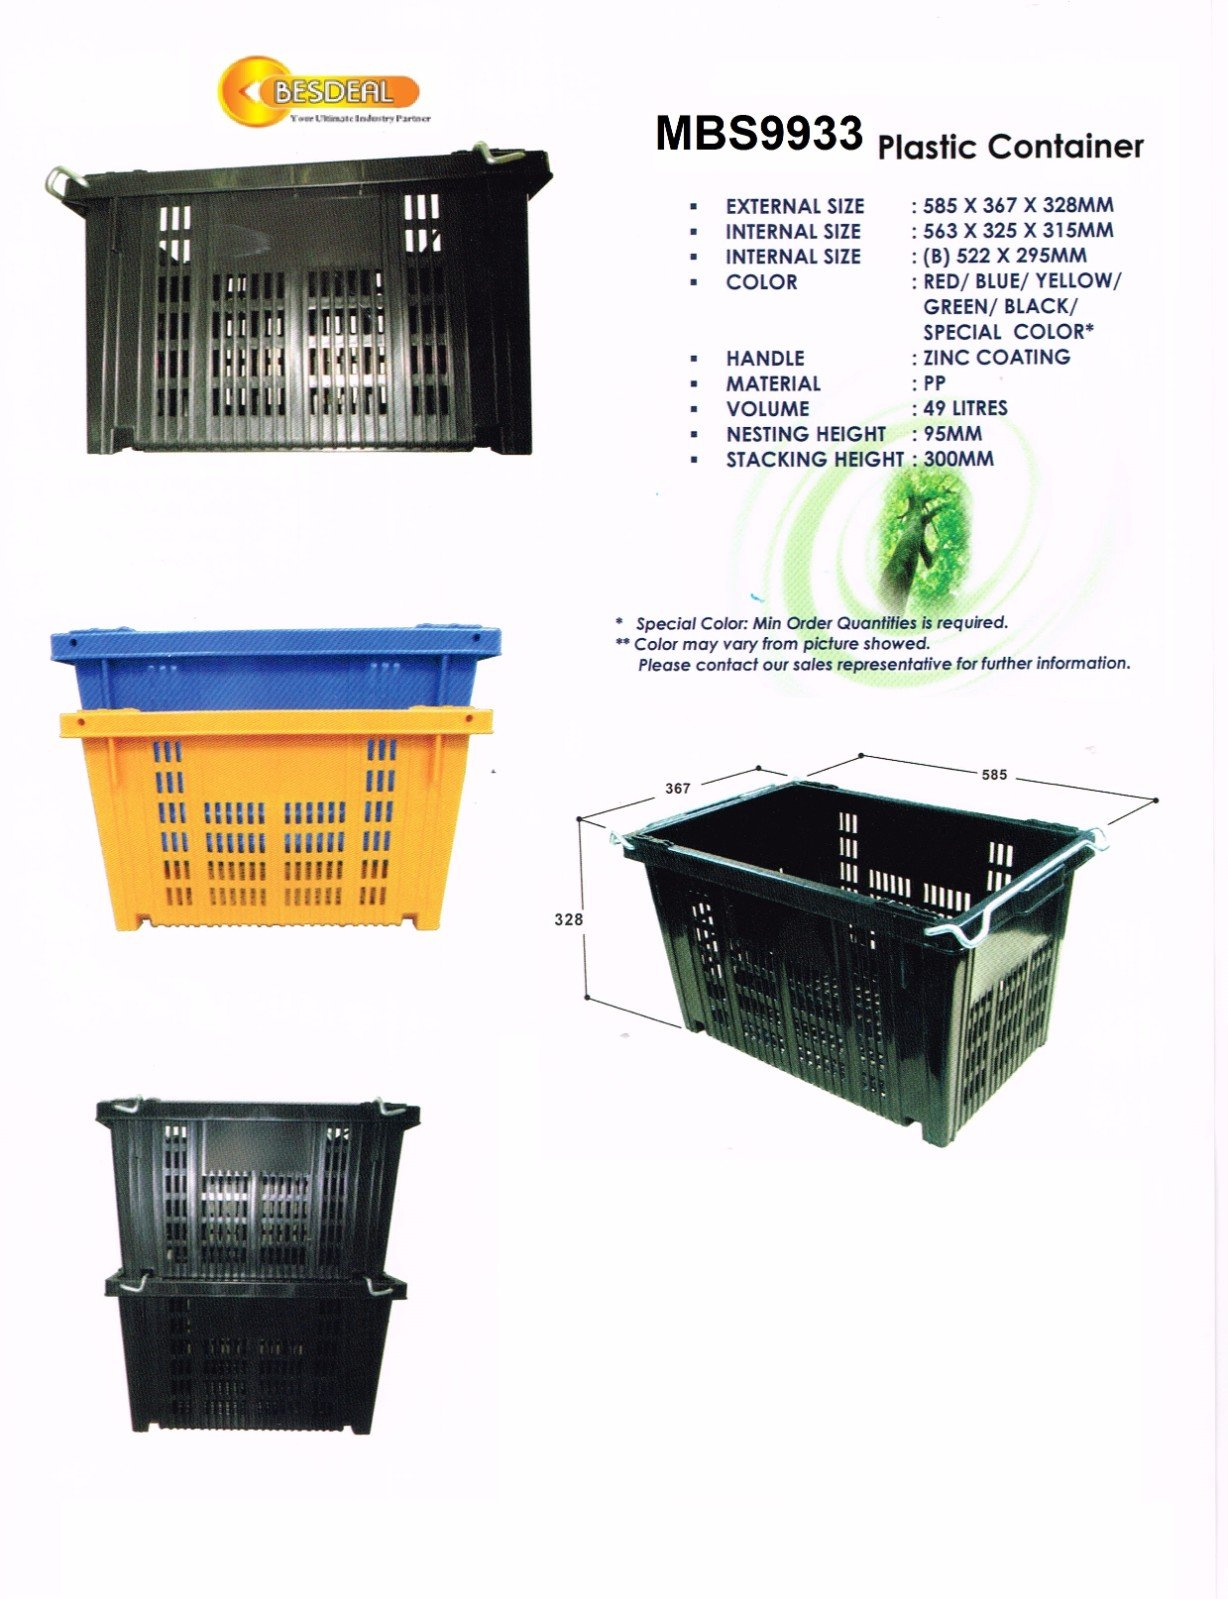 Plastic Container Mdl MBS9933